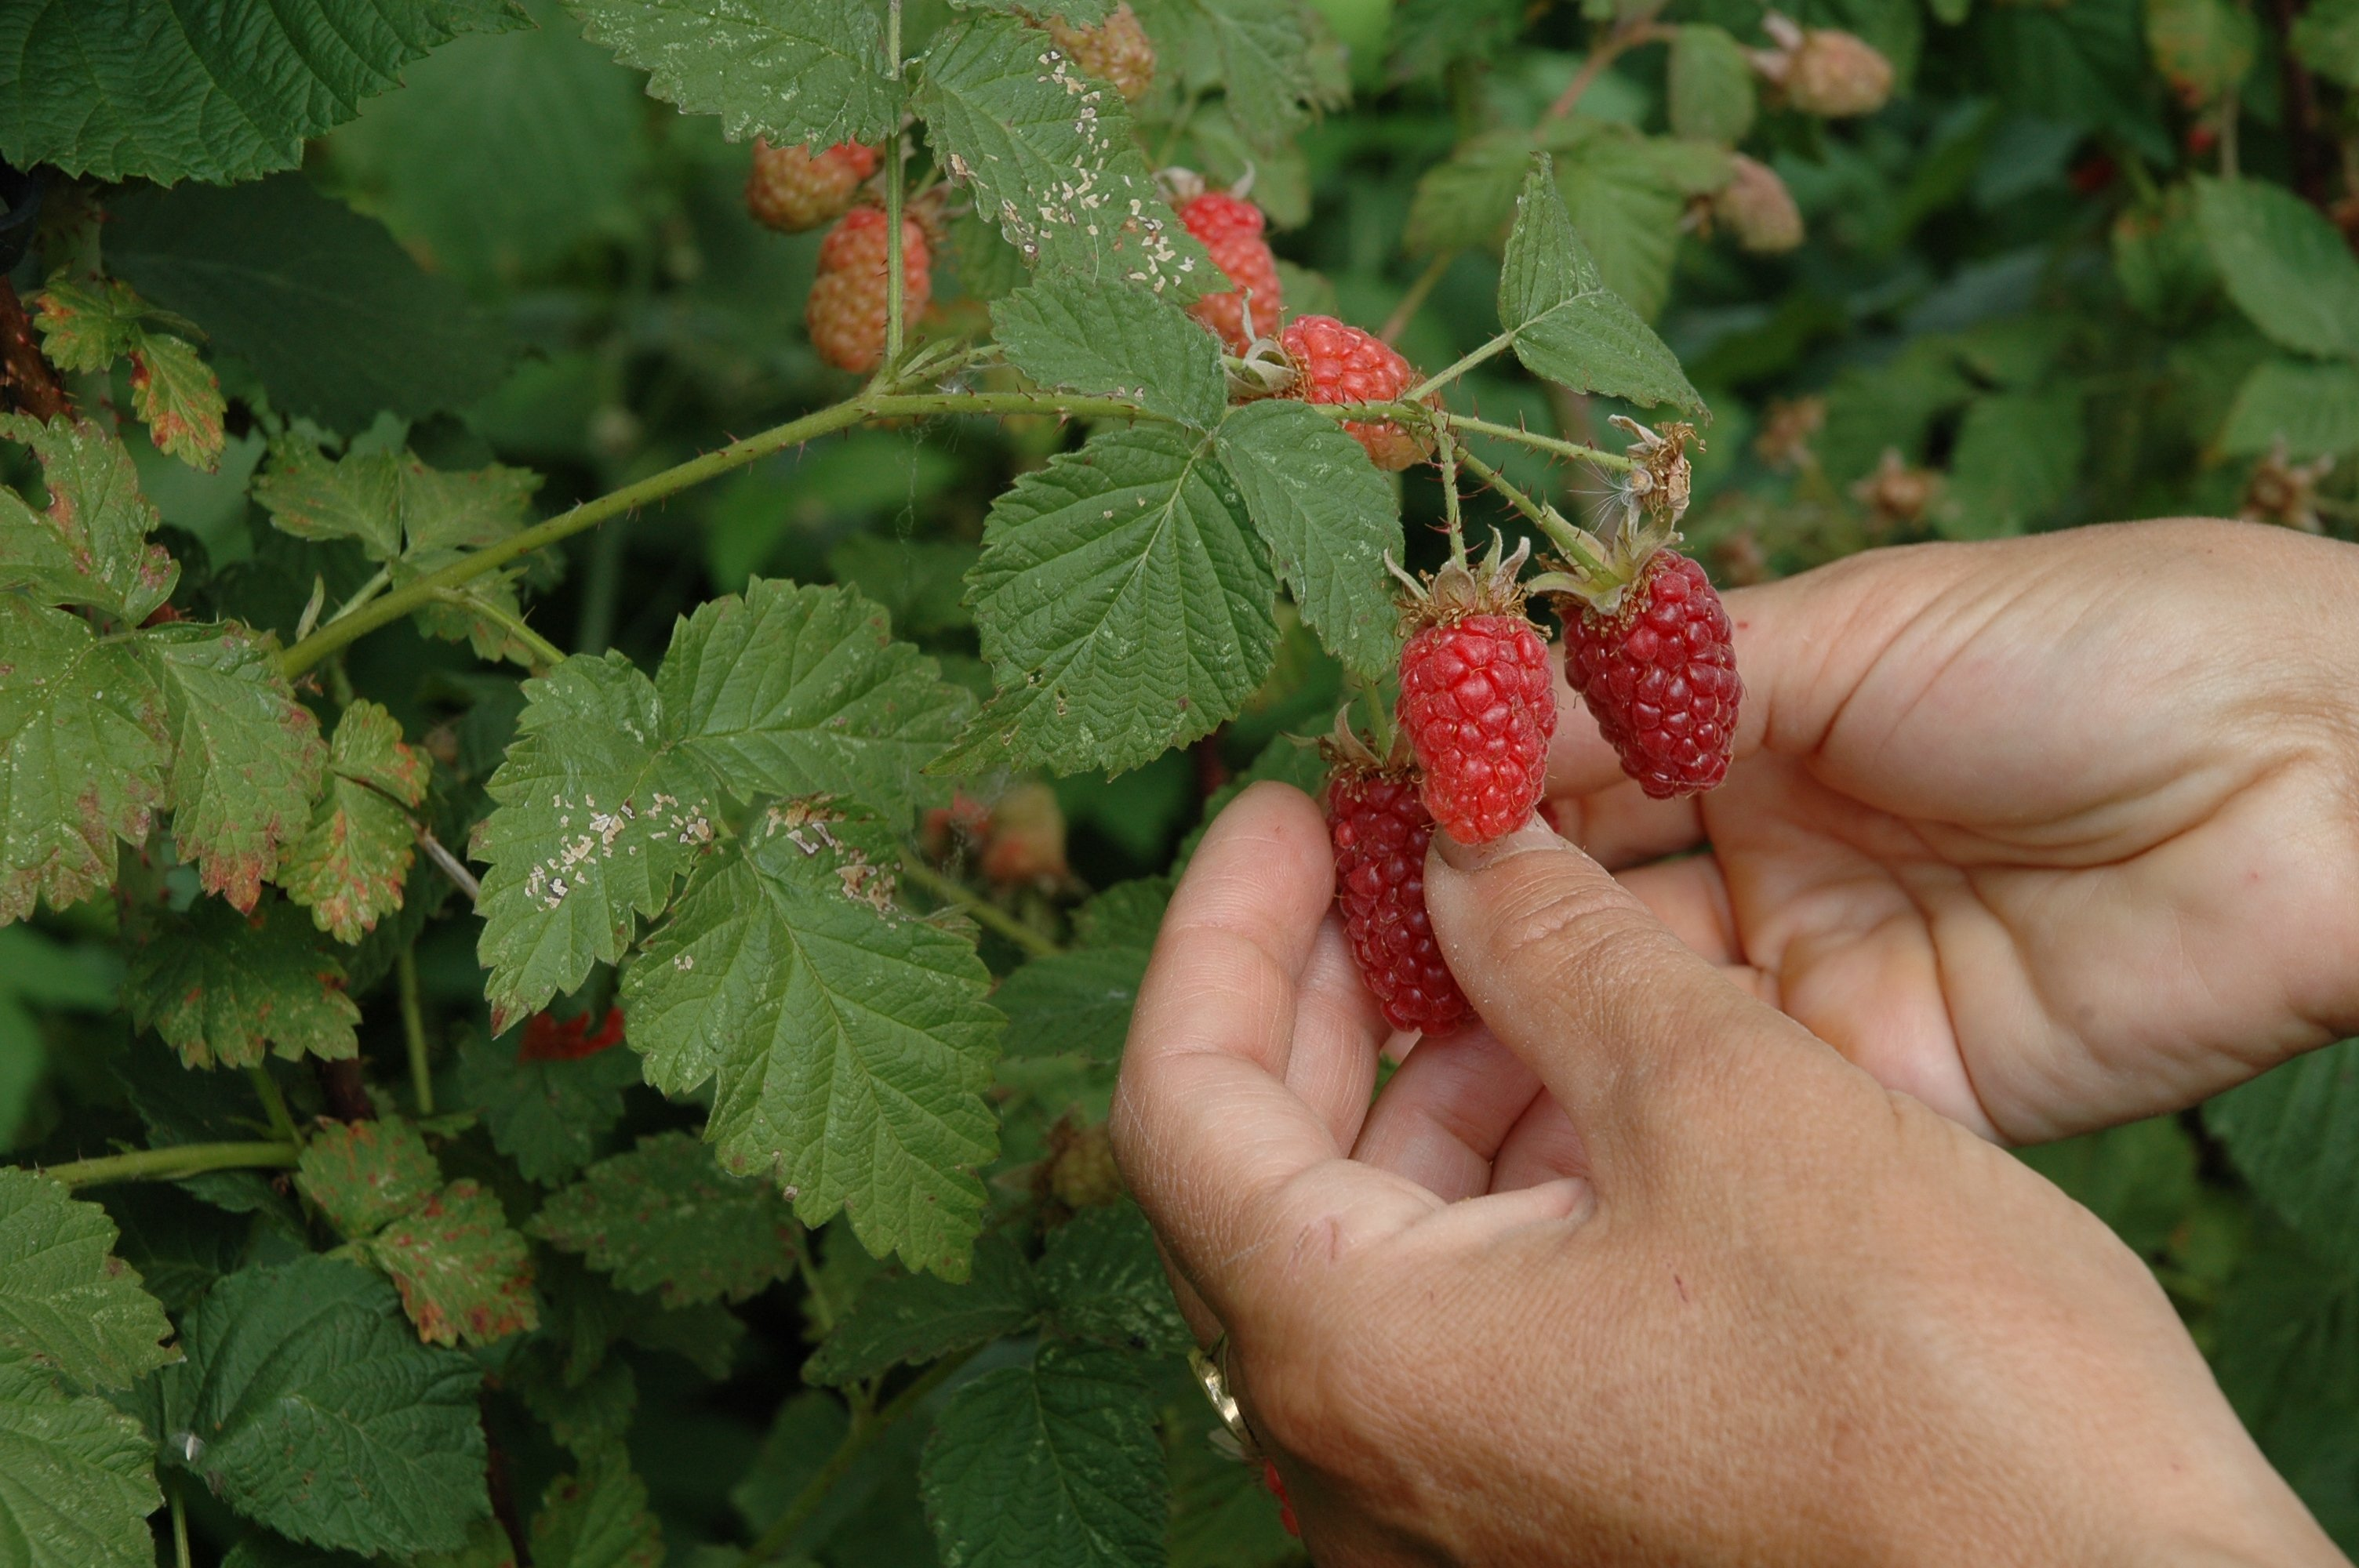 hands picking raspberries